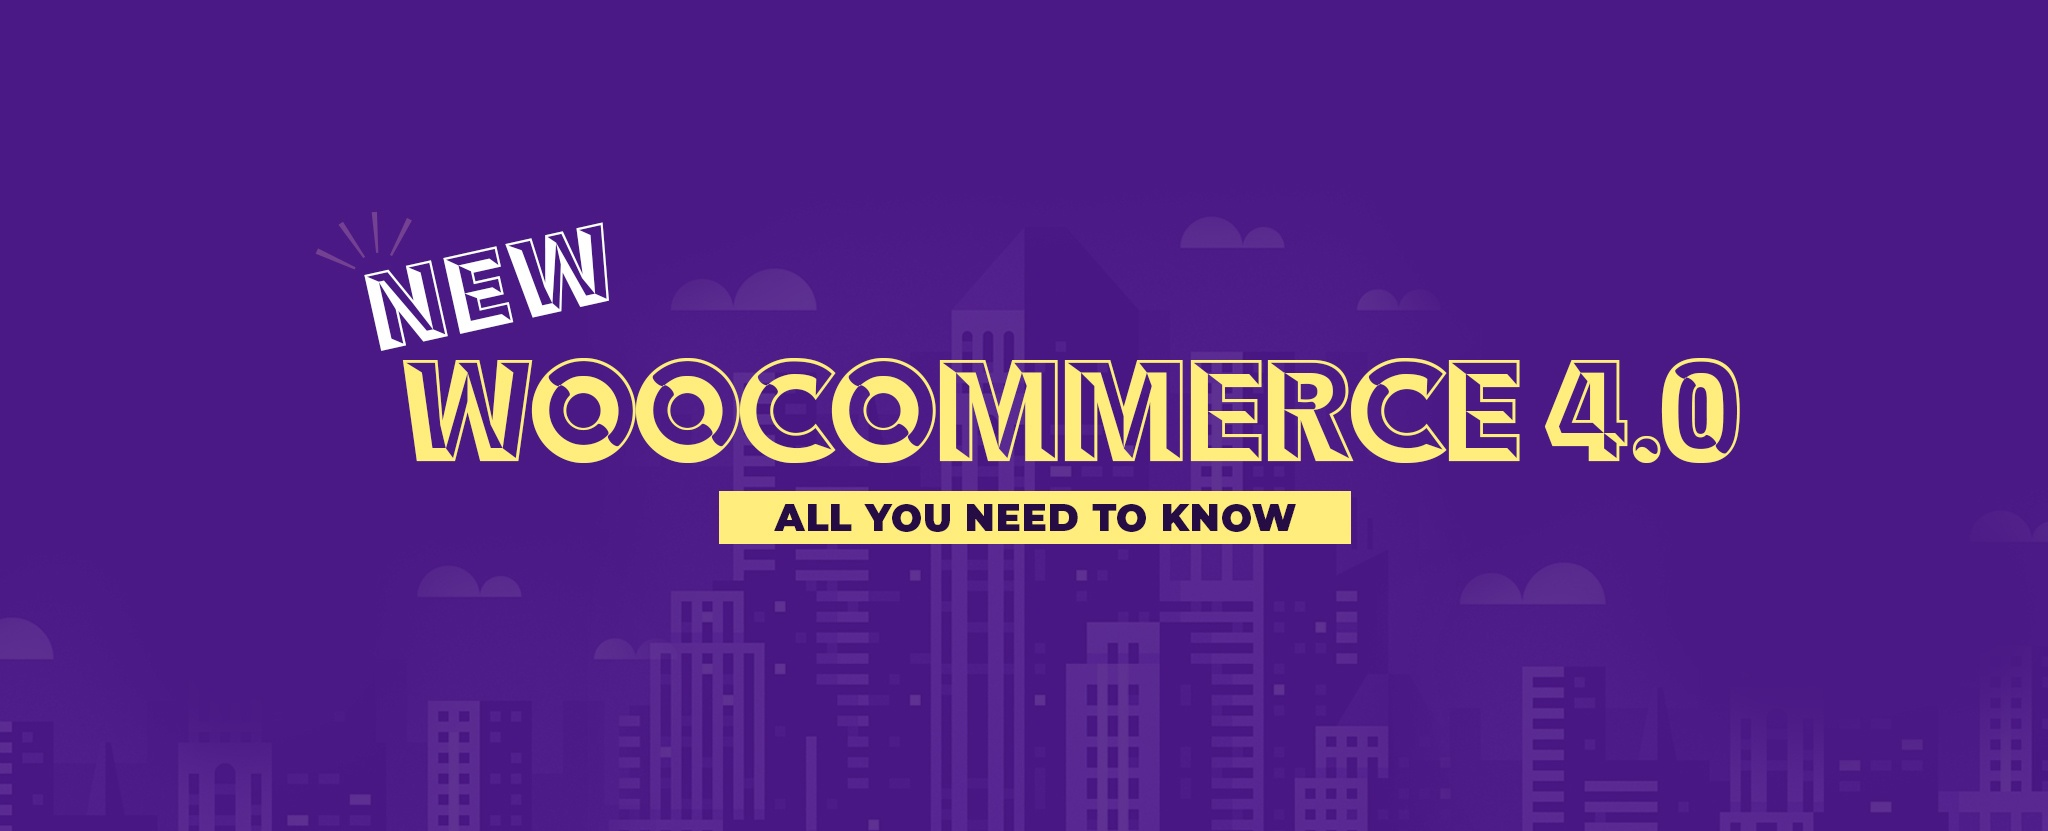 WooCommerce 4.0 Released - All You Need to Know copy